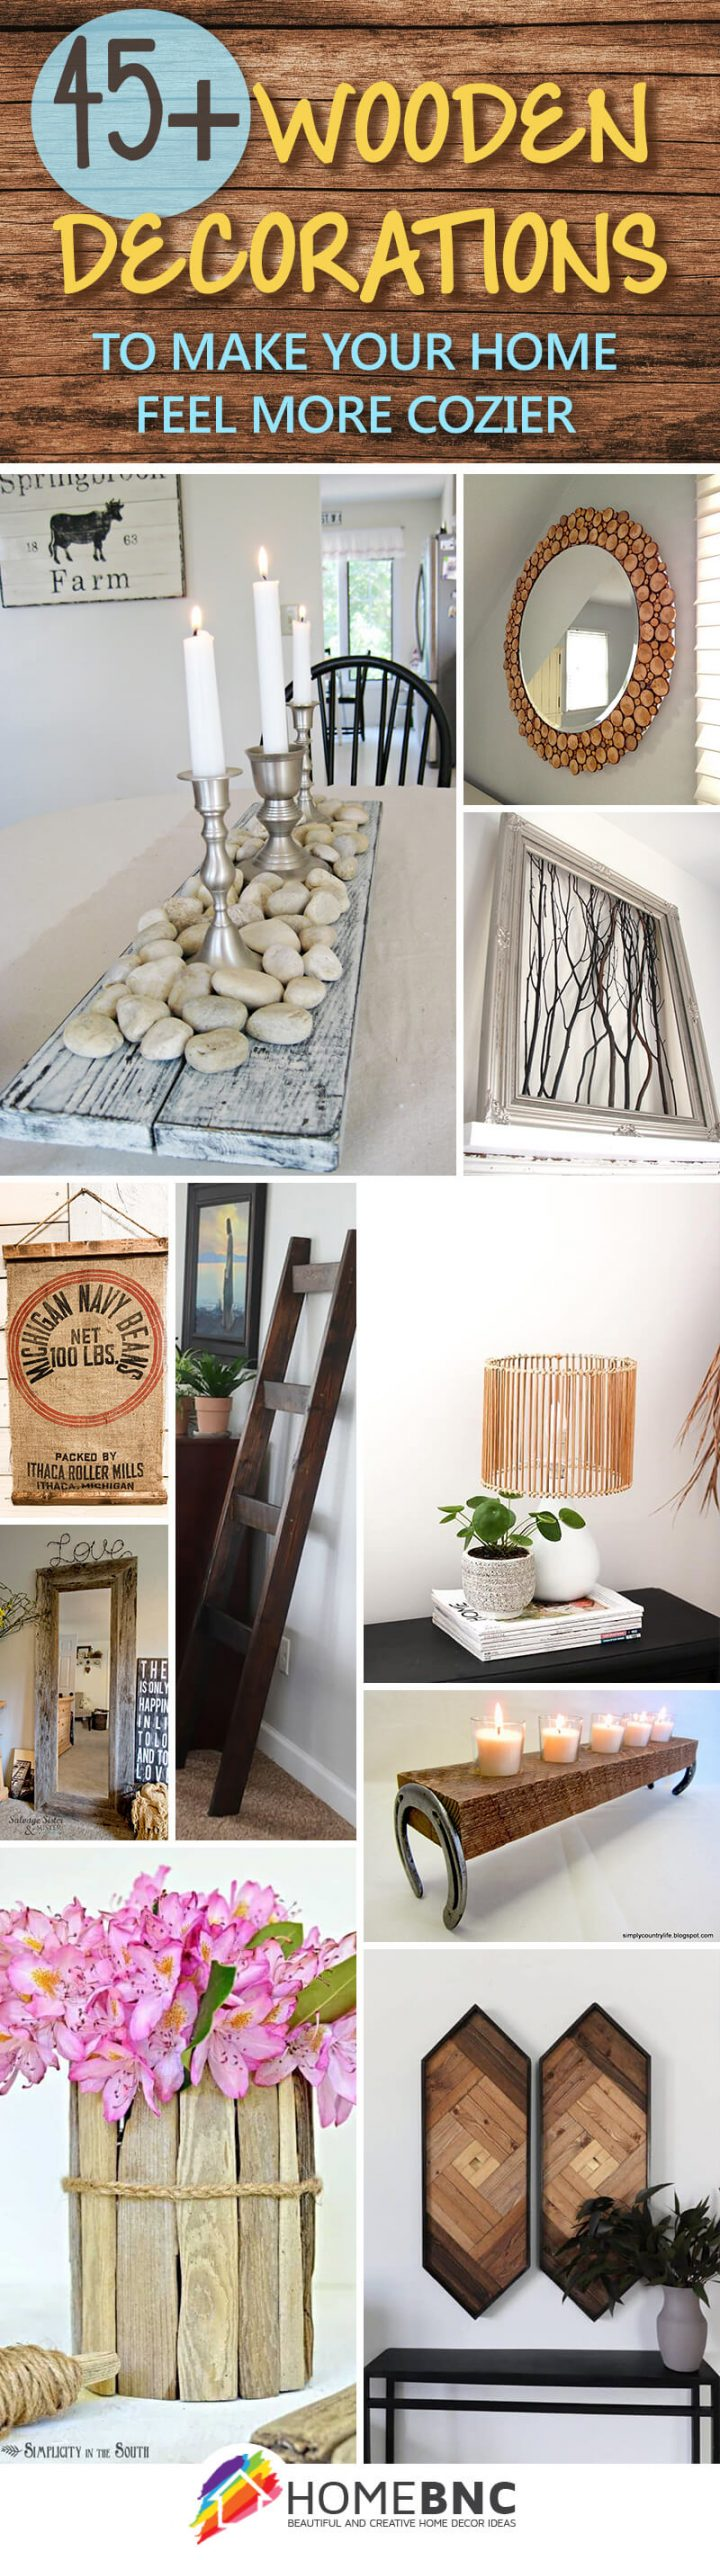 Wood Home Decorations